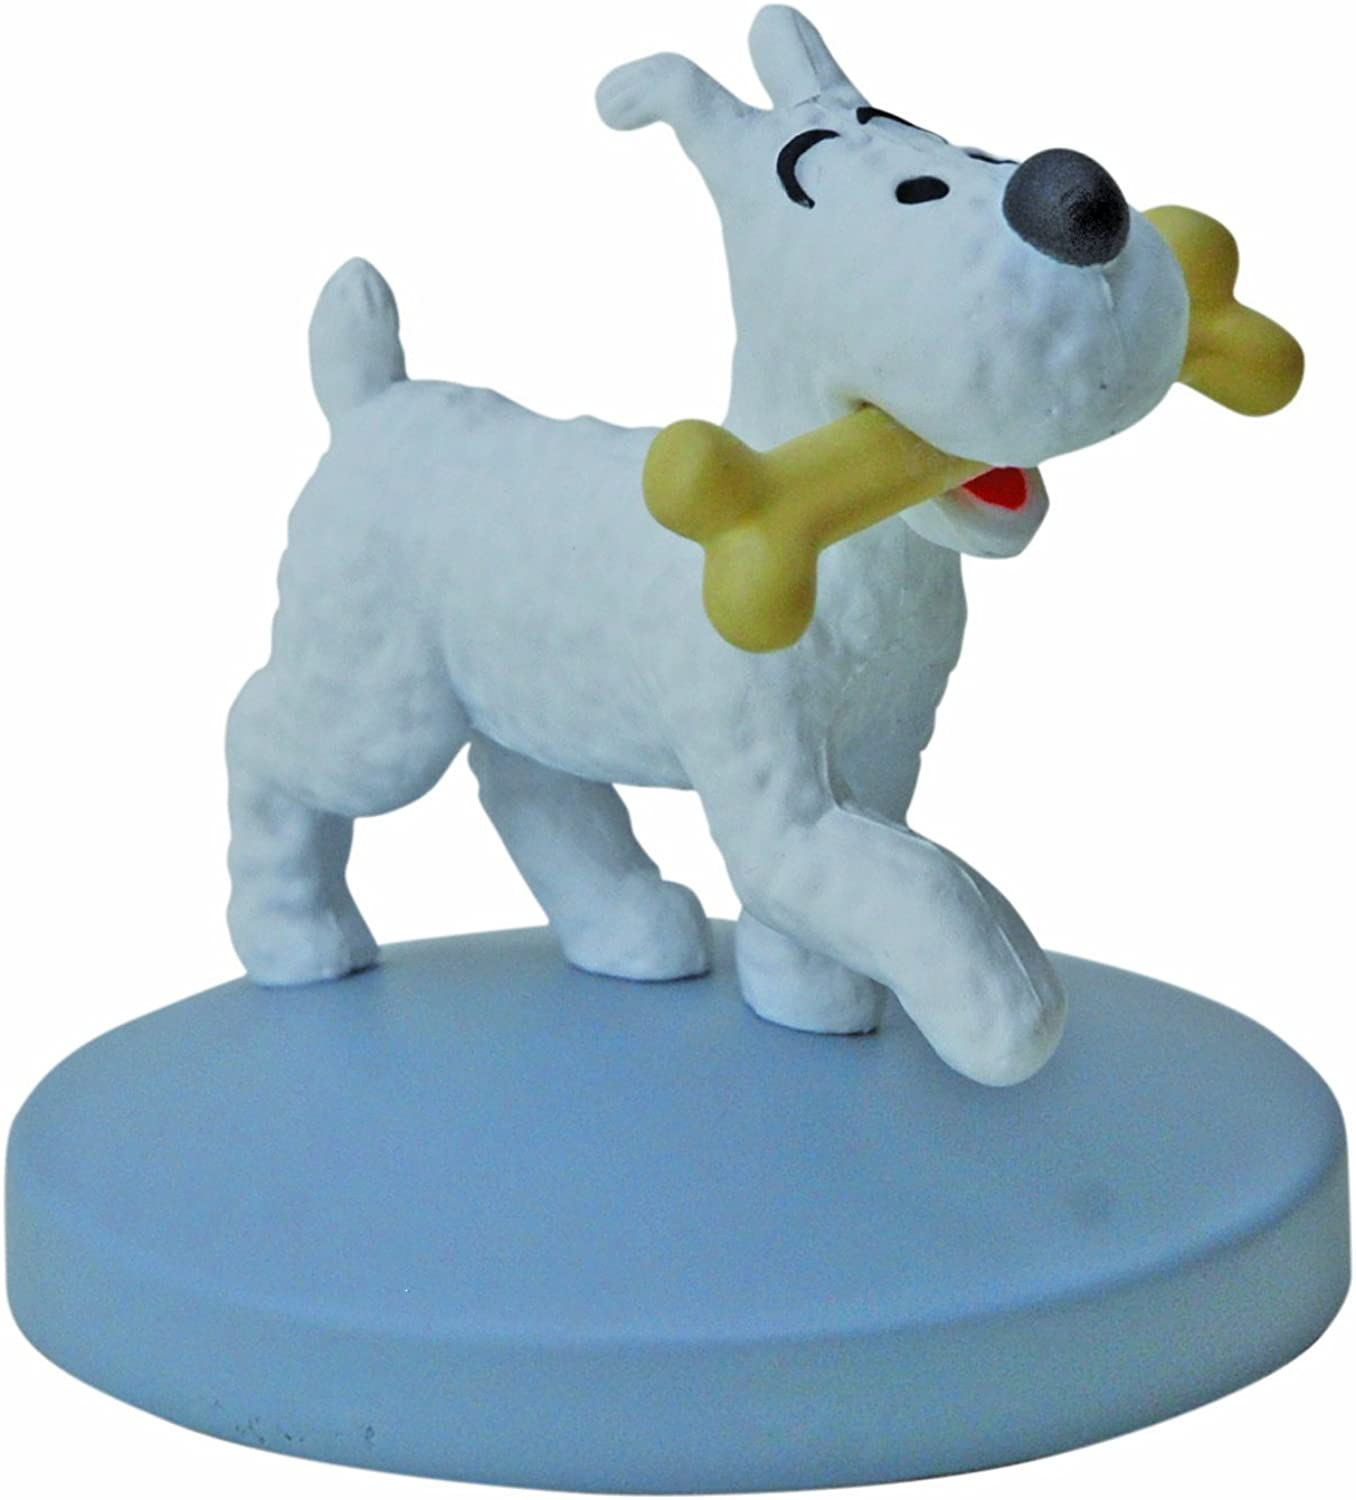 5 CM SNOWY WITH HIS BONE FIGURINE FROM THE ADVENTURES OF TINTIN